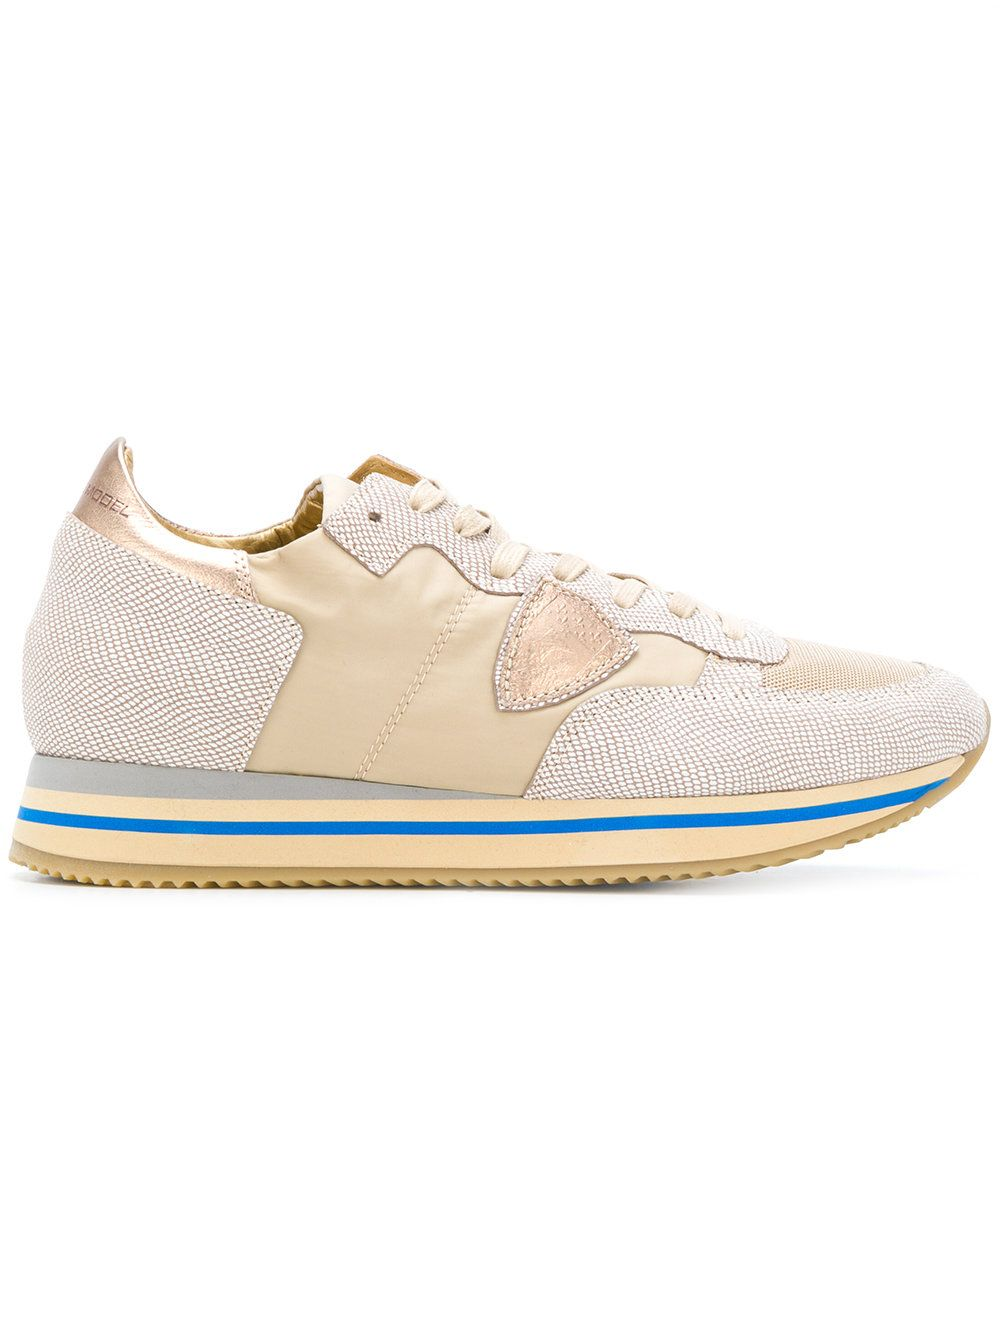 Buy Cheap Many Kinds Of Cheap Excellent Eiffel sneakers - Nude & Neutrals Philippe Model Pk0INC